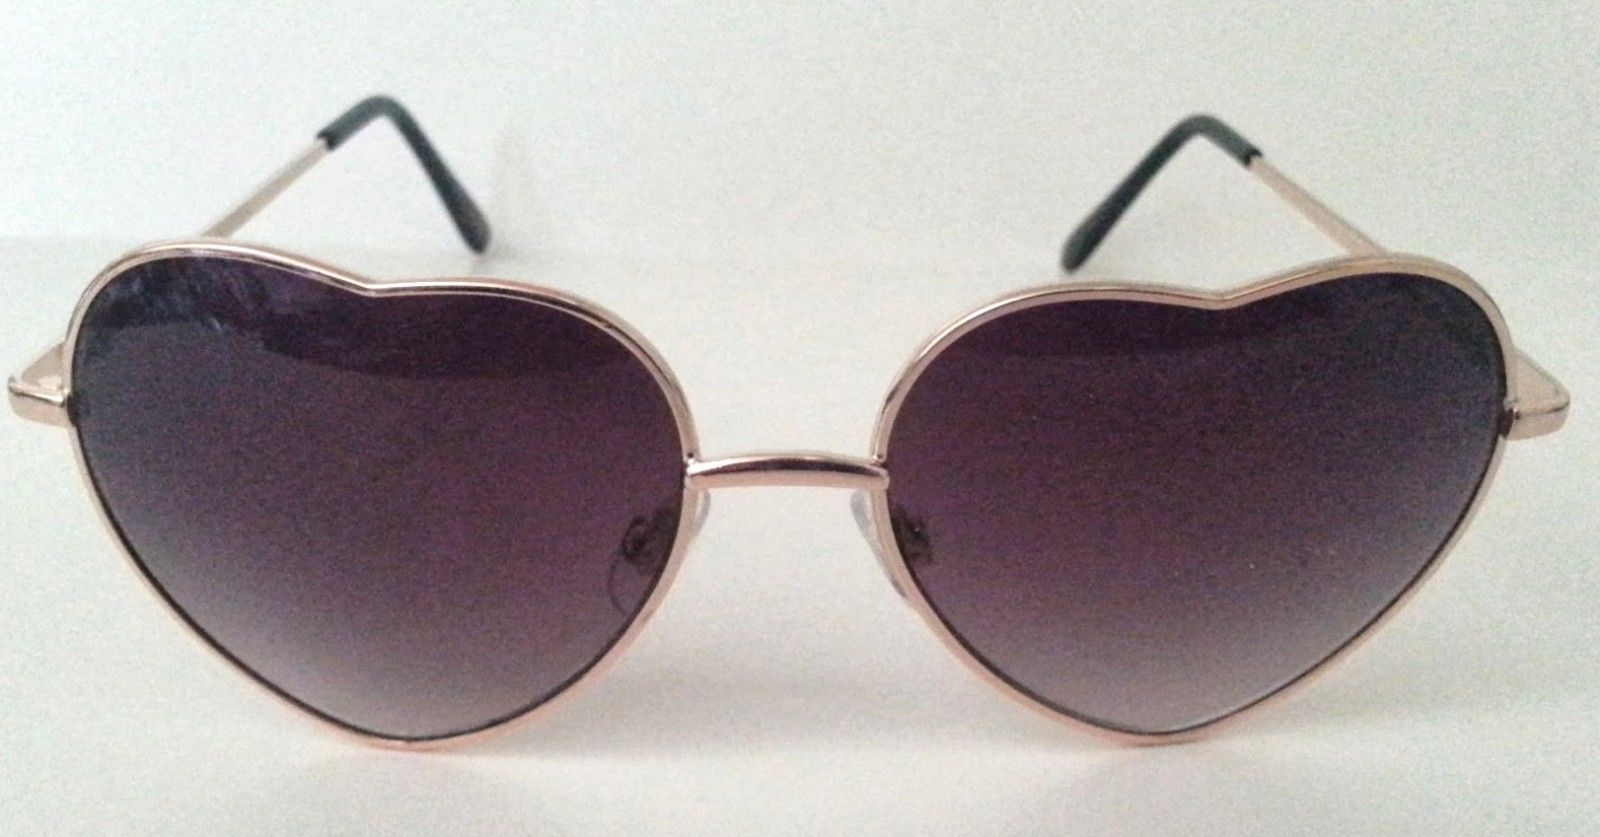 Heart Shape Sunglasses  Silver or Gold Metal Frame